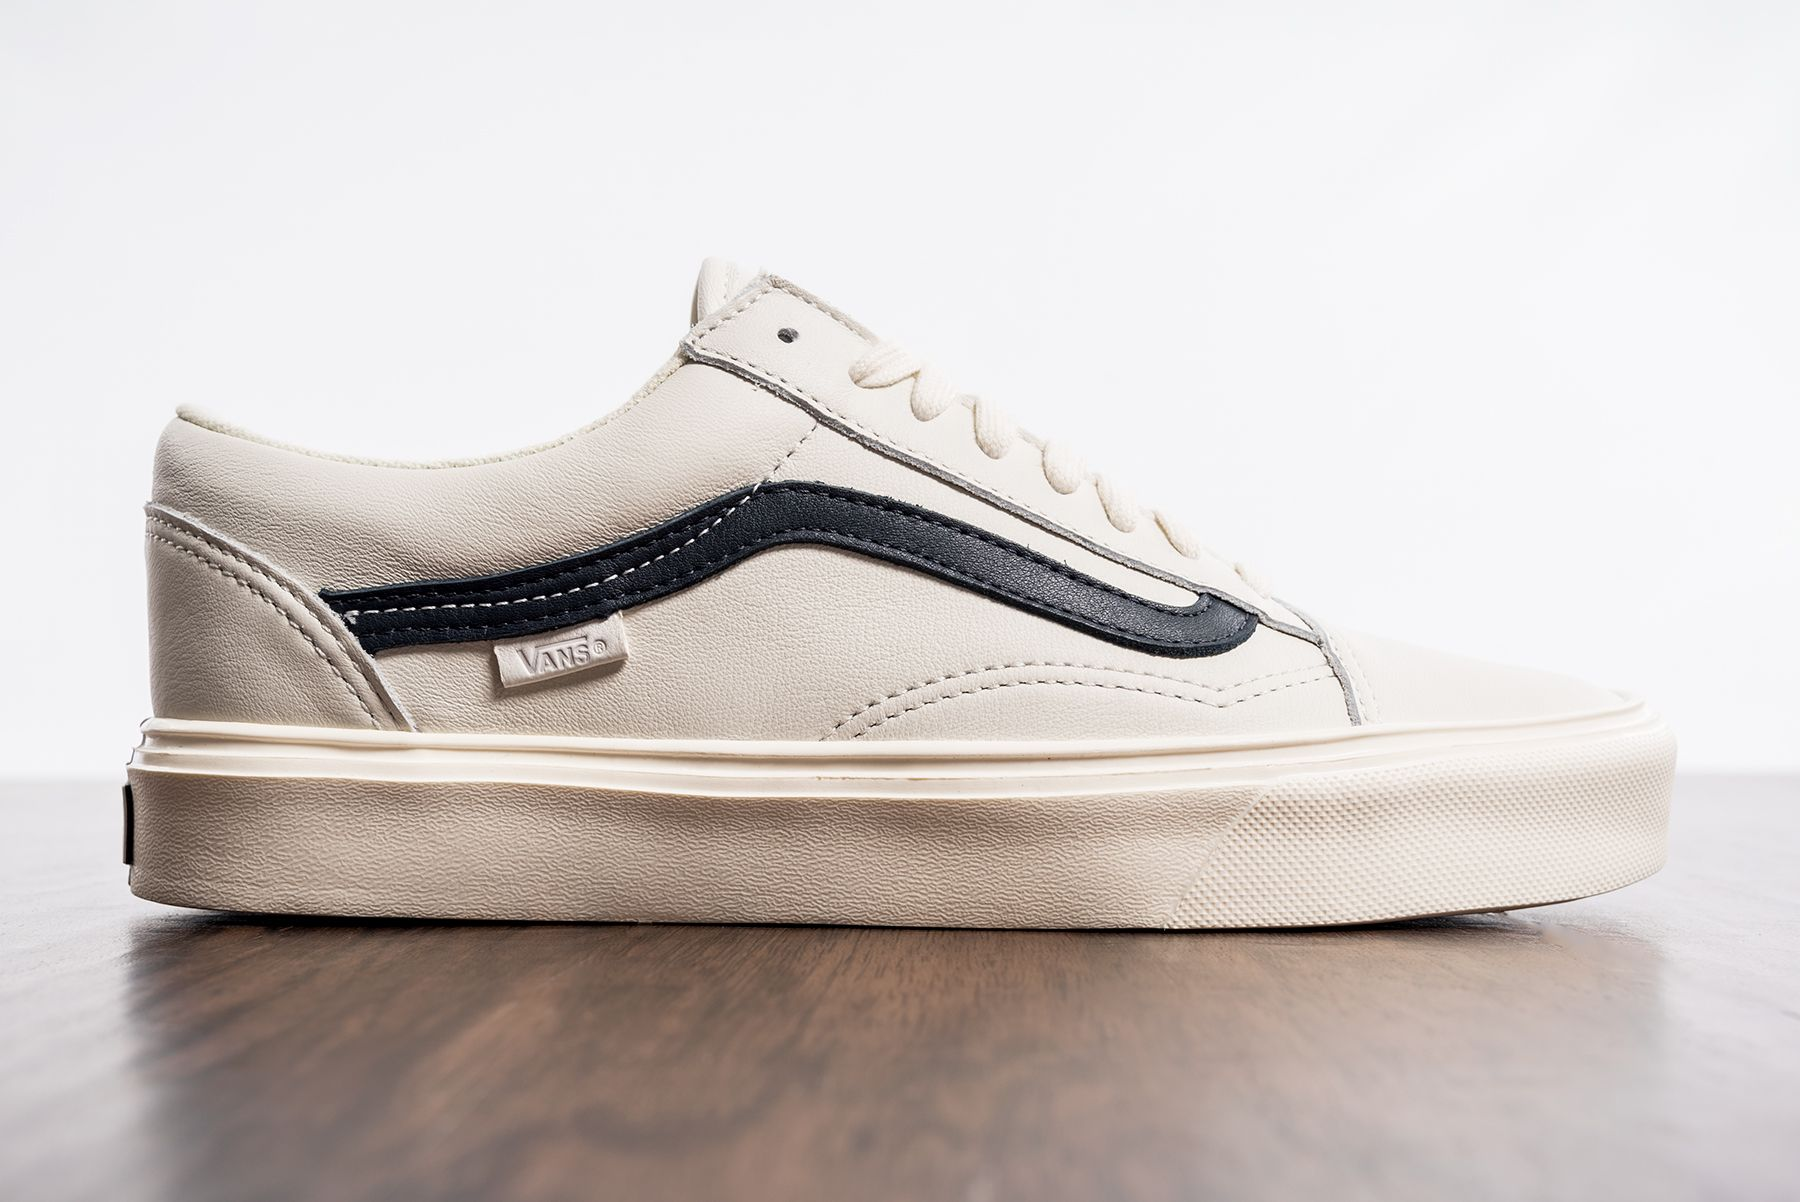 882e4251f099 Vans Vault Old Skool Lite LX in Marshmallow